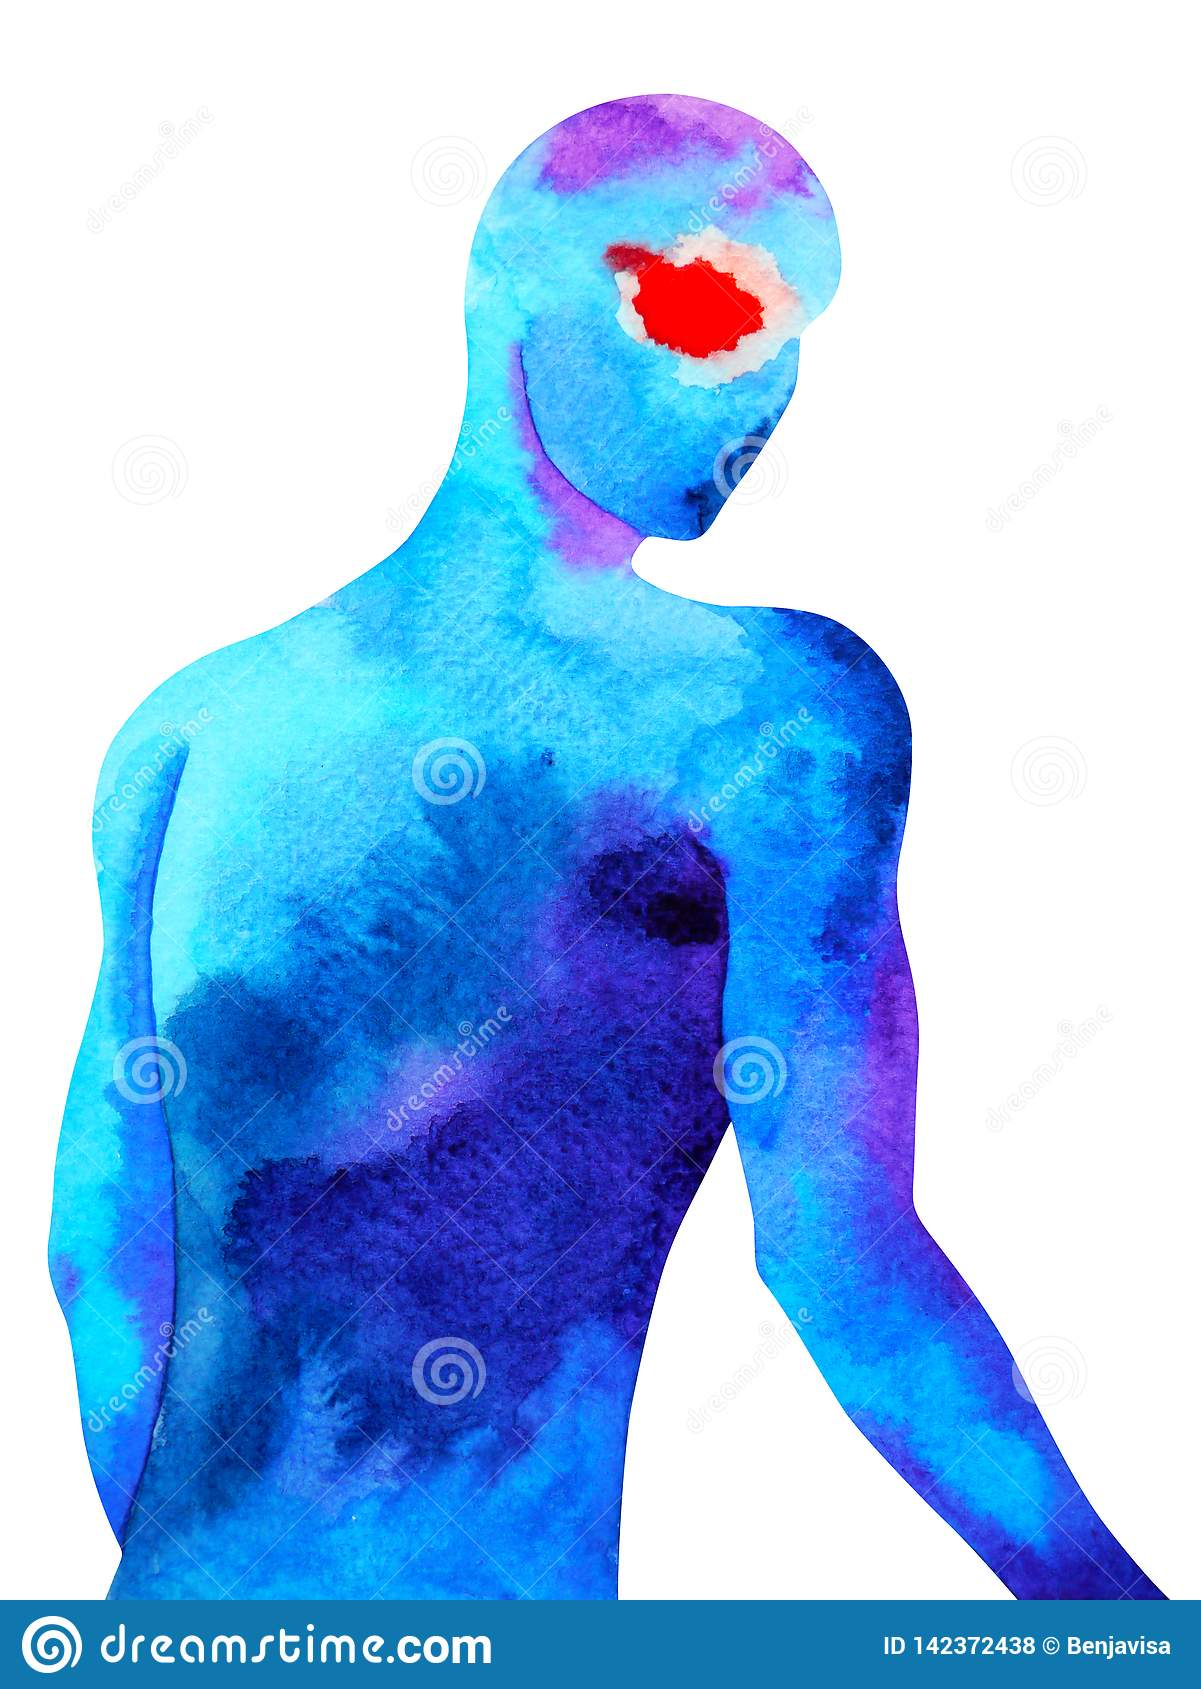 Human Standing Look Back Pose Abstract Body Watercolor